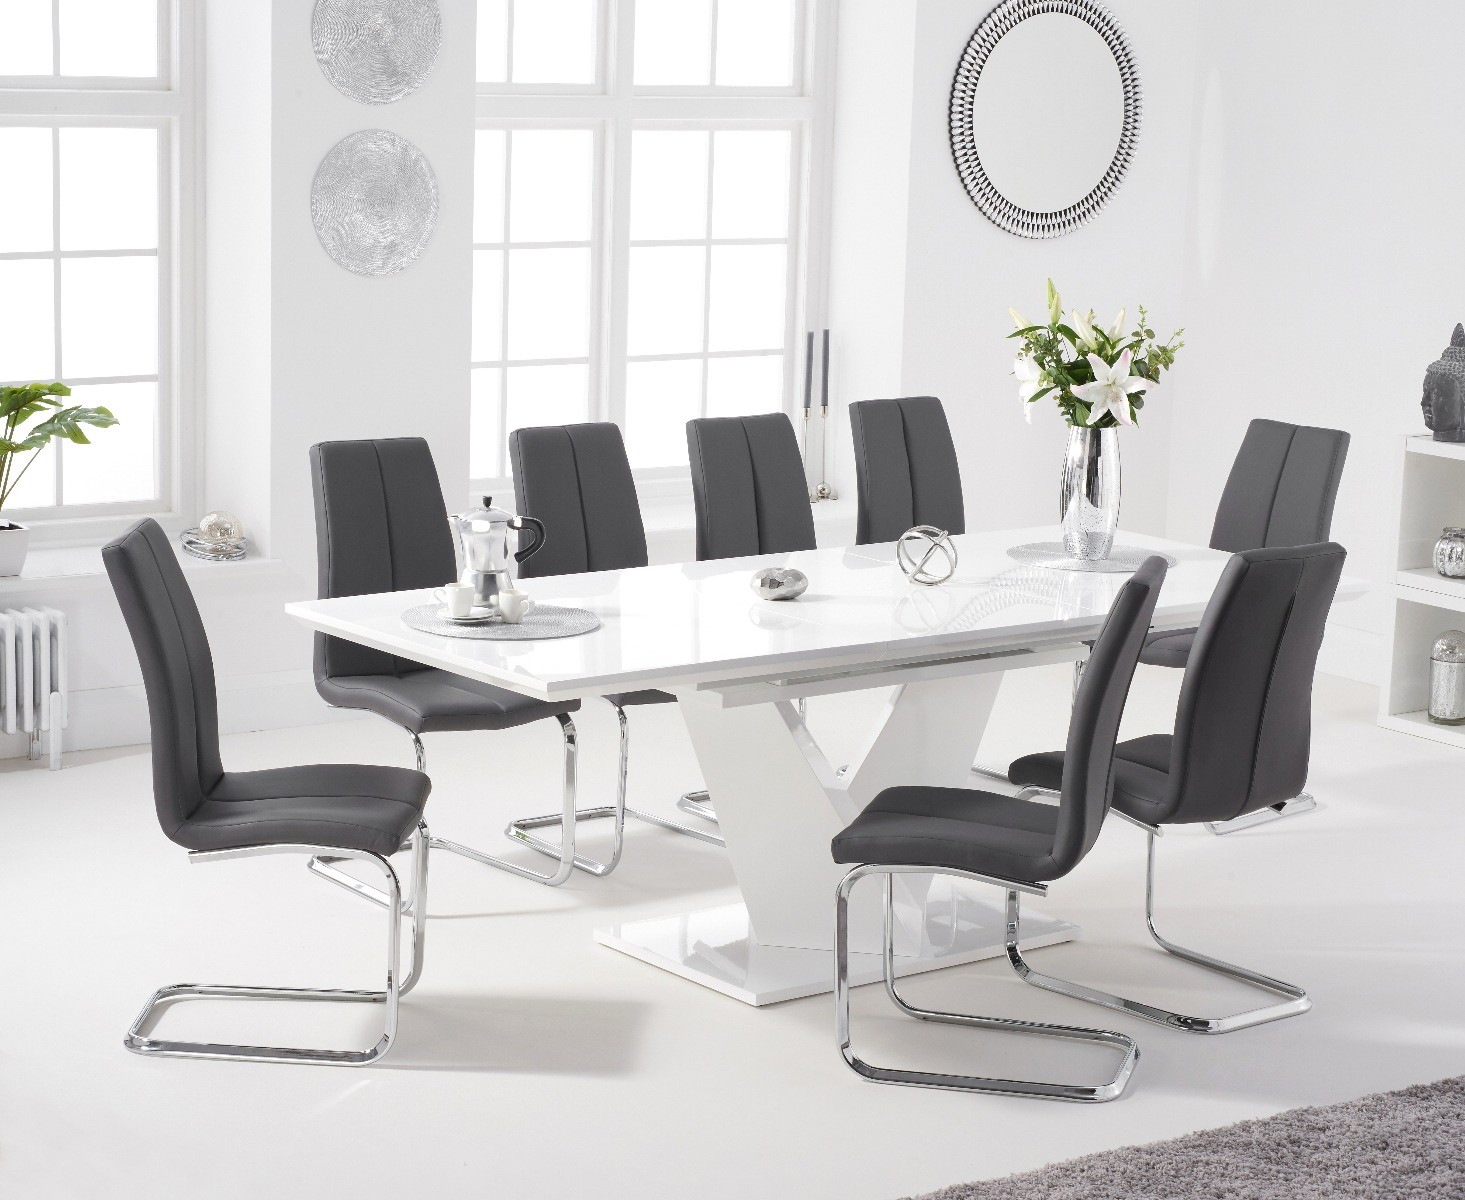 An image of Halo 160cm White High Gloss Extending Dining Table with Tarin Faux Leather Chair...